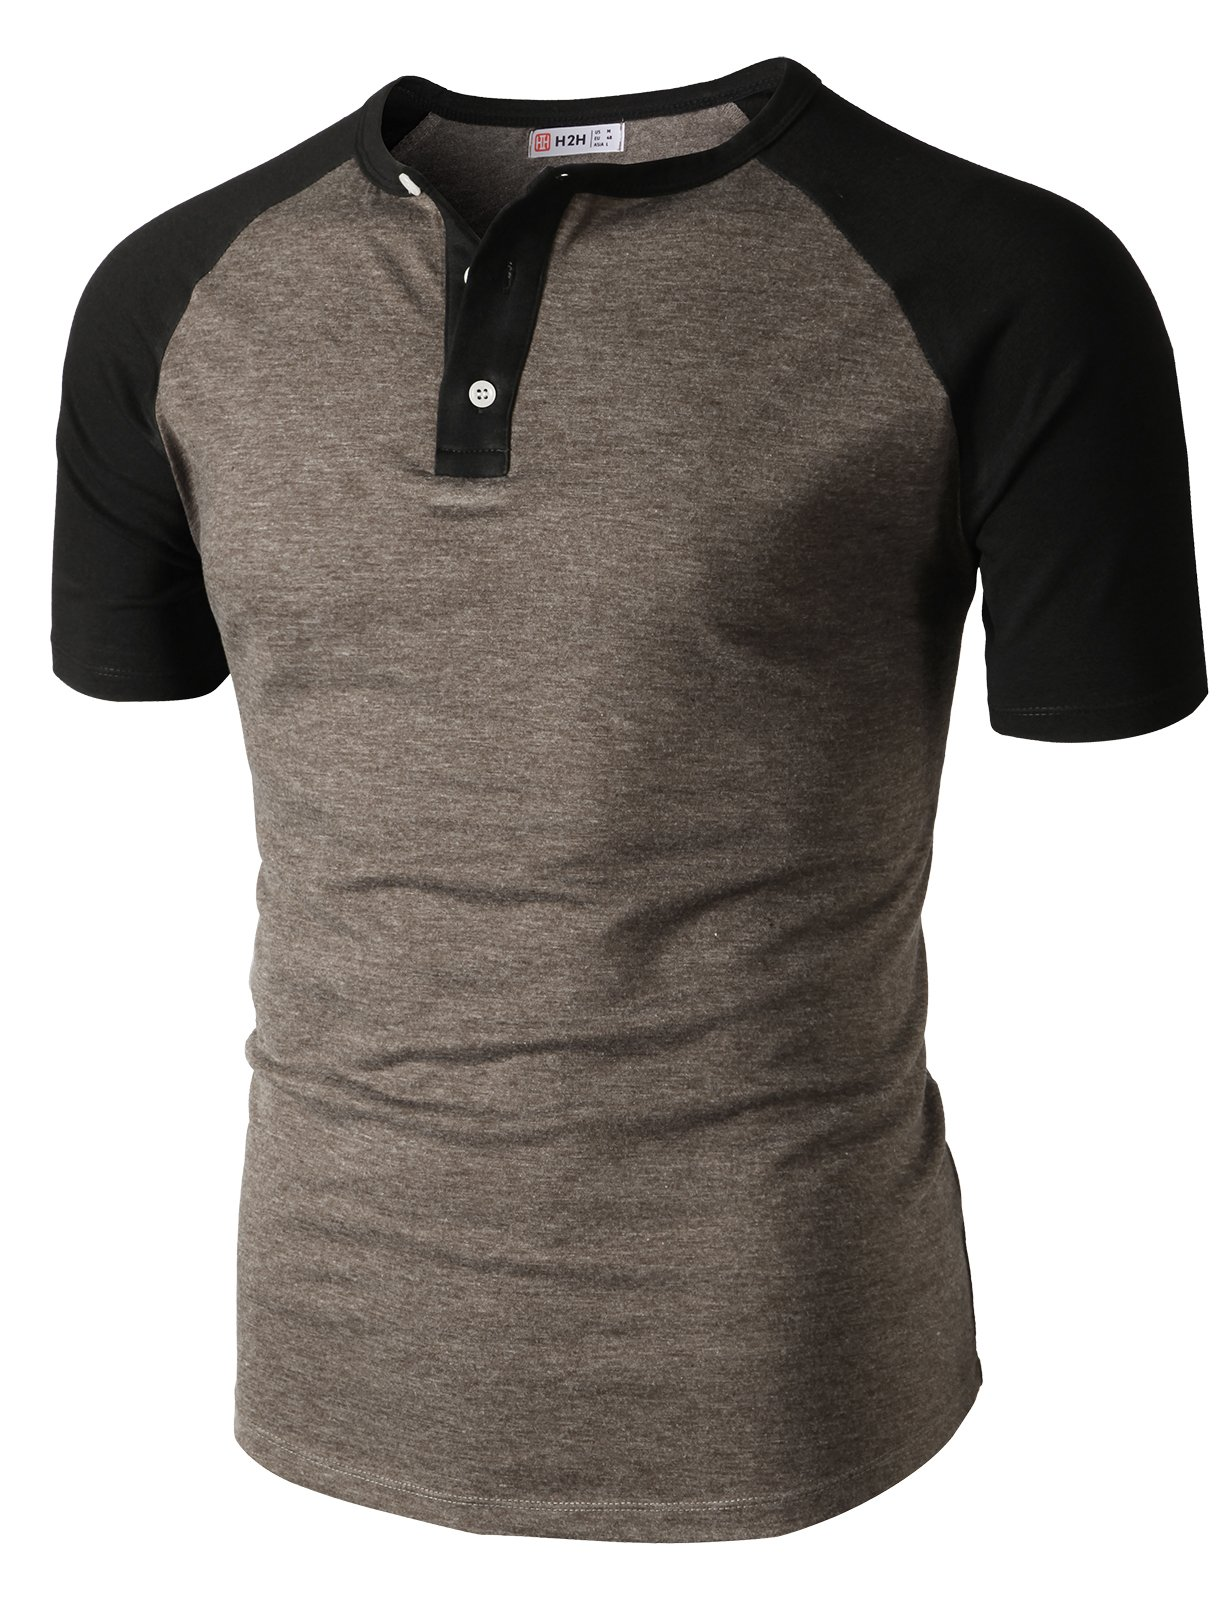 H2H Mens Casual Big Plaid Henley Short Sleeve Spandex T Shirt Tops HEATHERBROWN US M/Asia L (CMTTS0222)